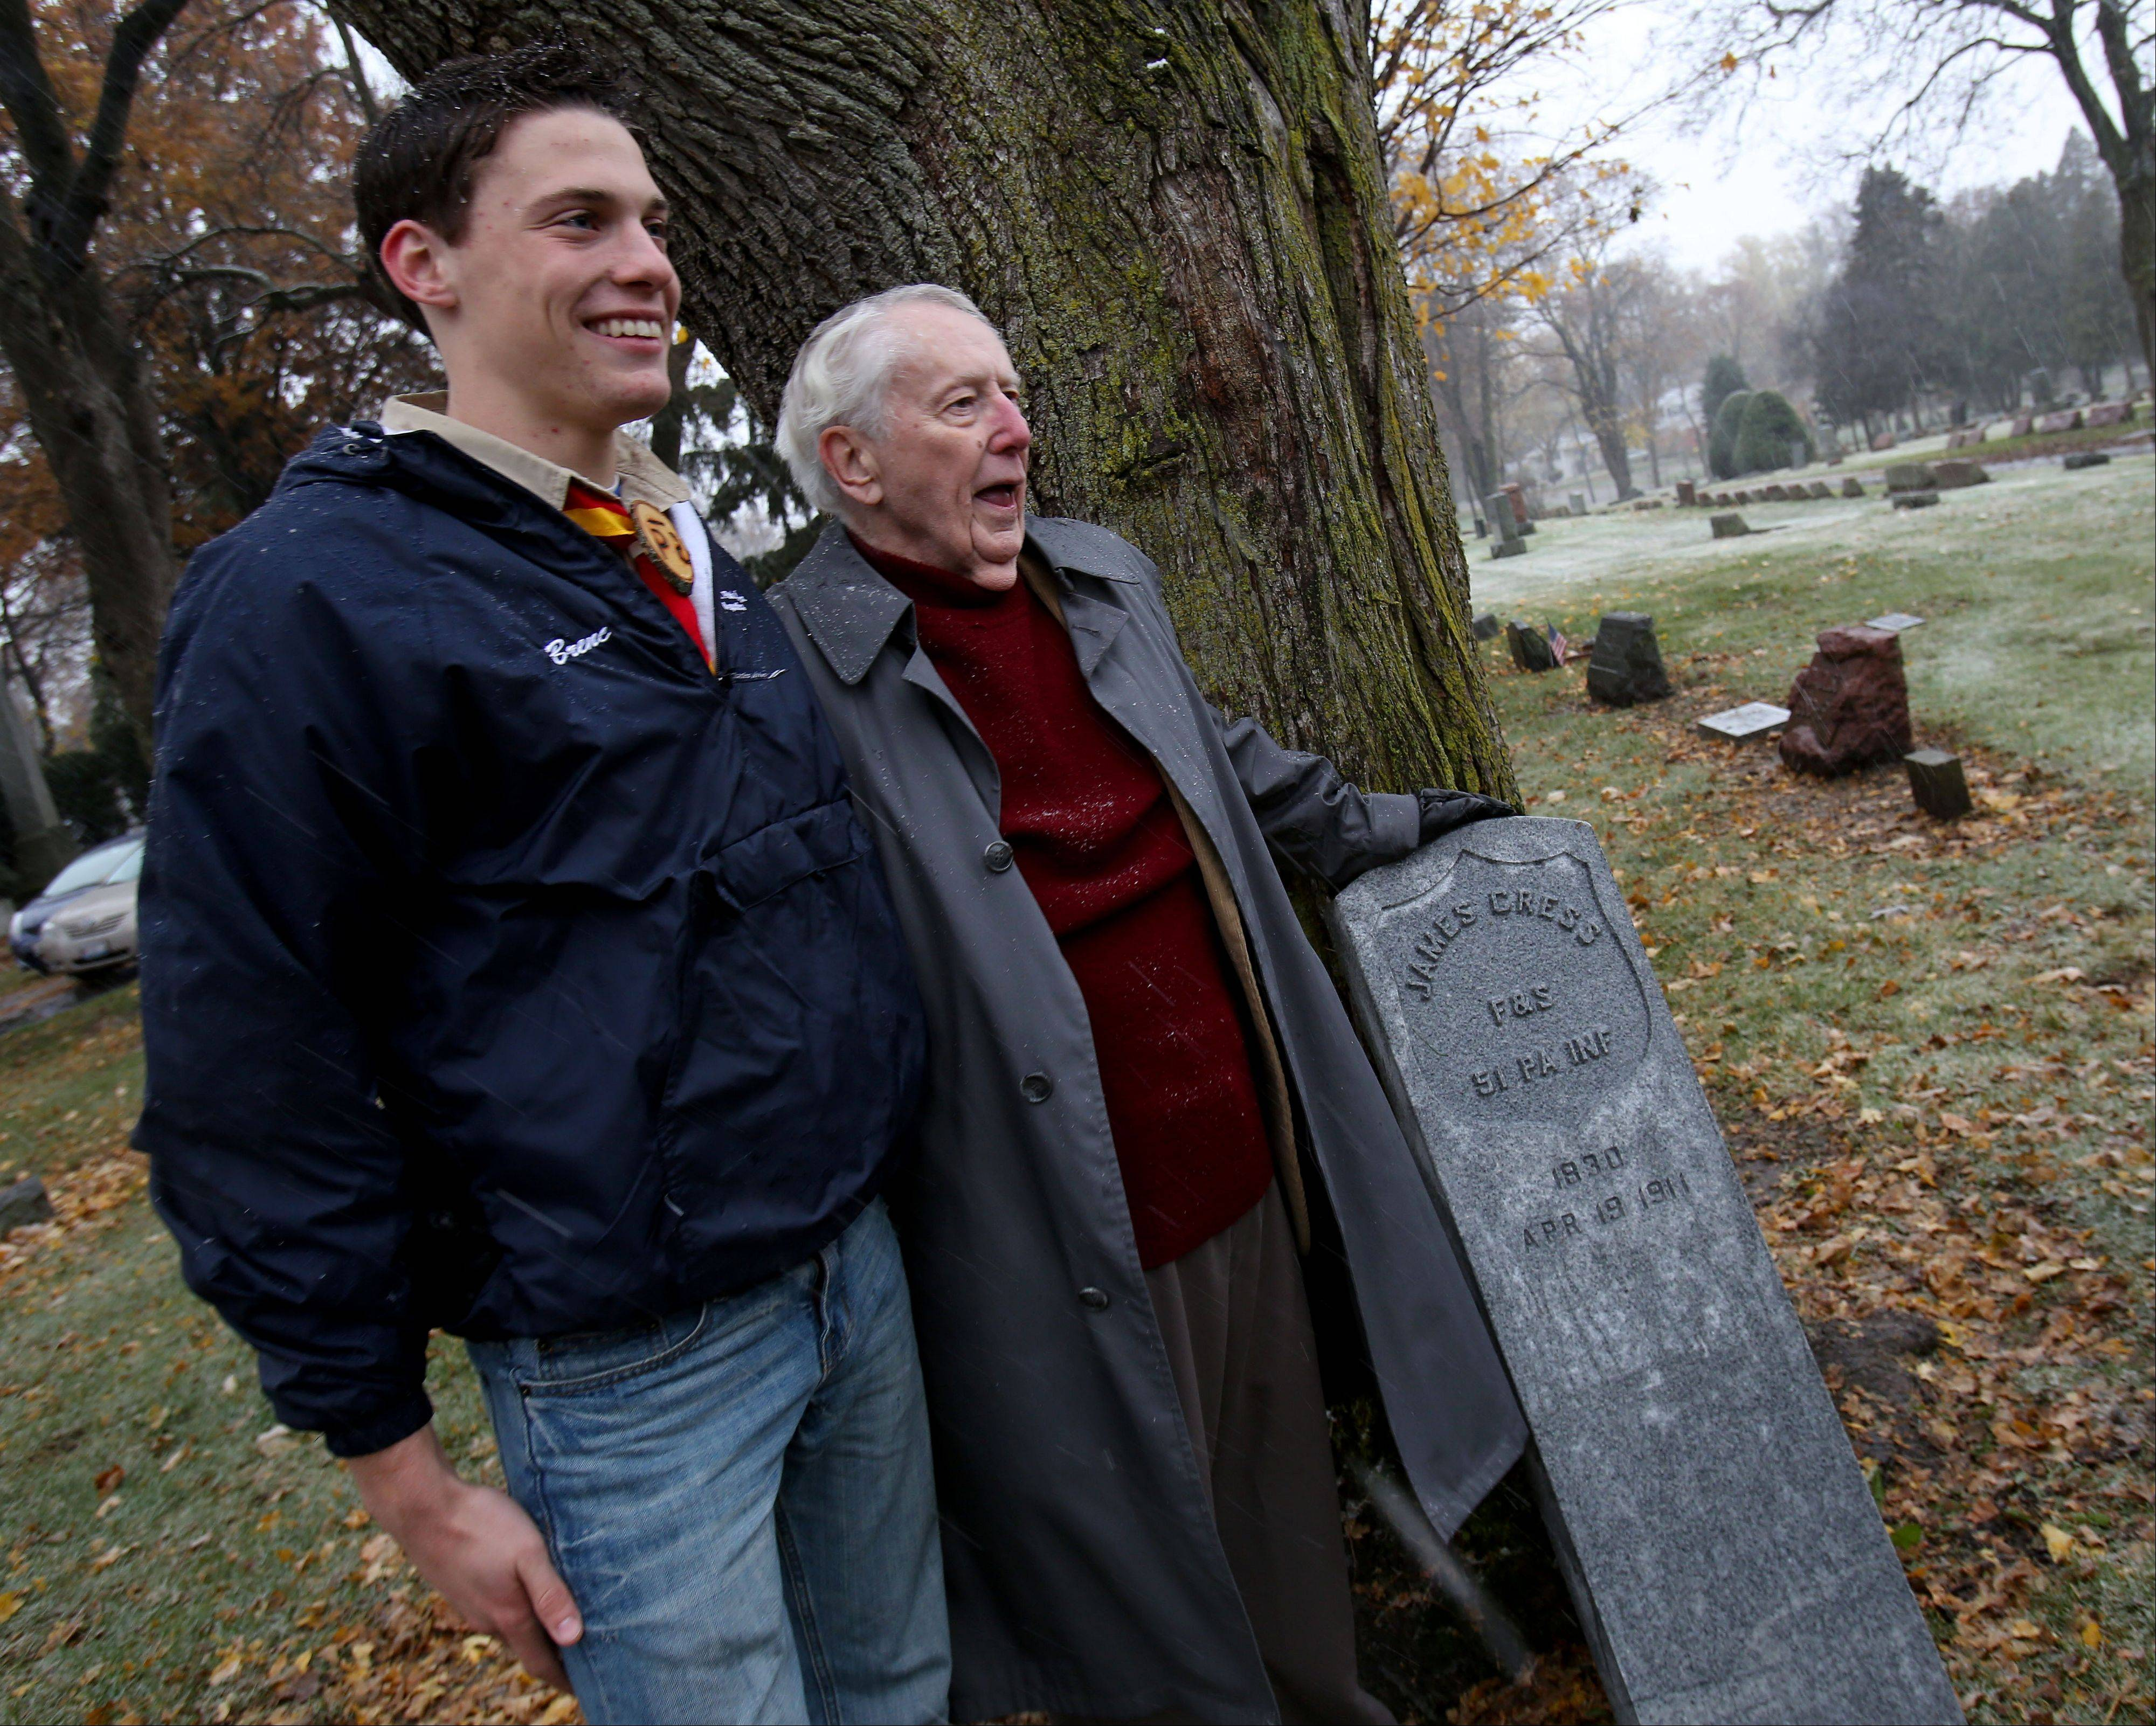 Boy Scout Josh Brenc stands Monday with James Malone of Wheaton at Wheaton Cemetery. As part of an Eagle Scout project, Brenc has secured a headstone for Malone's great grandfather, Civil War veteran James Cress.